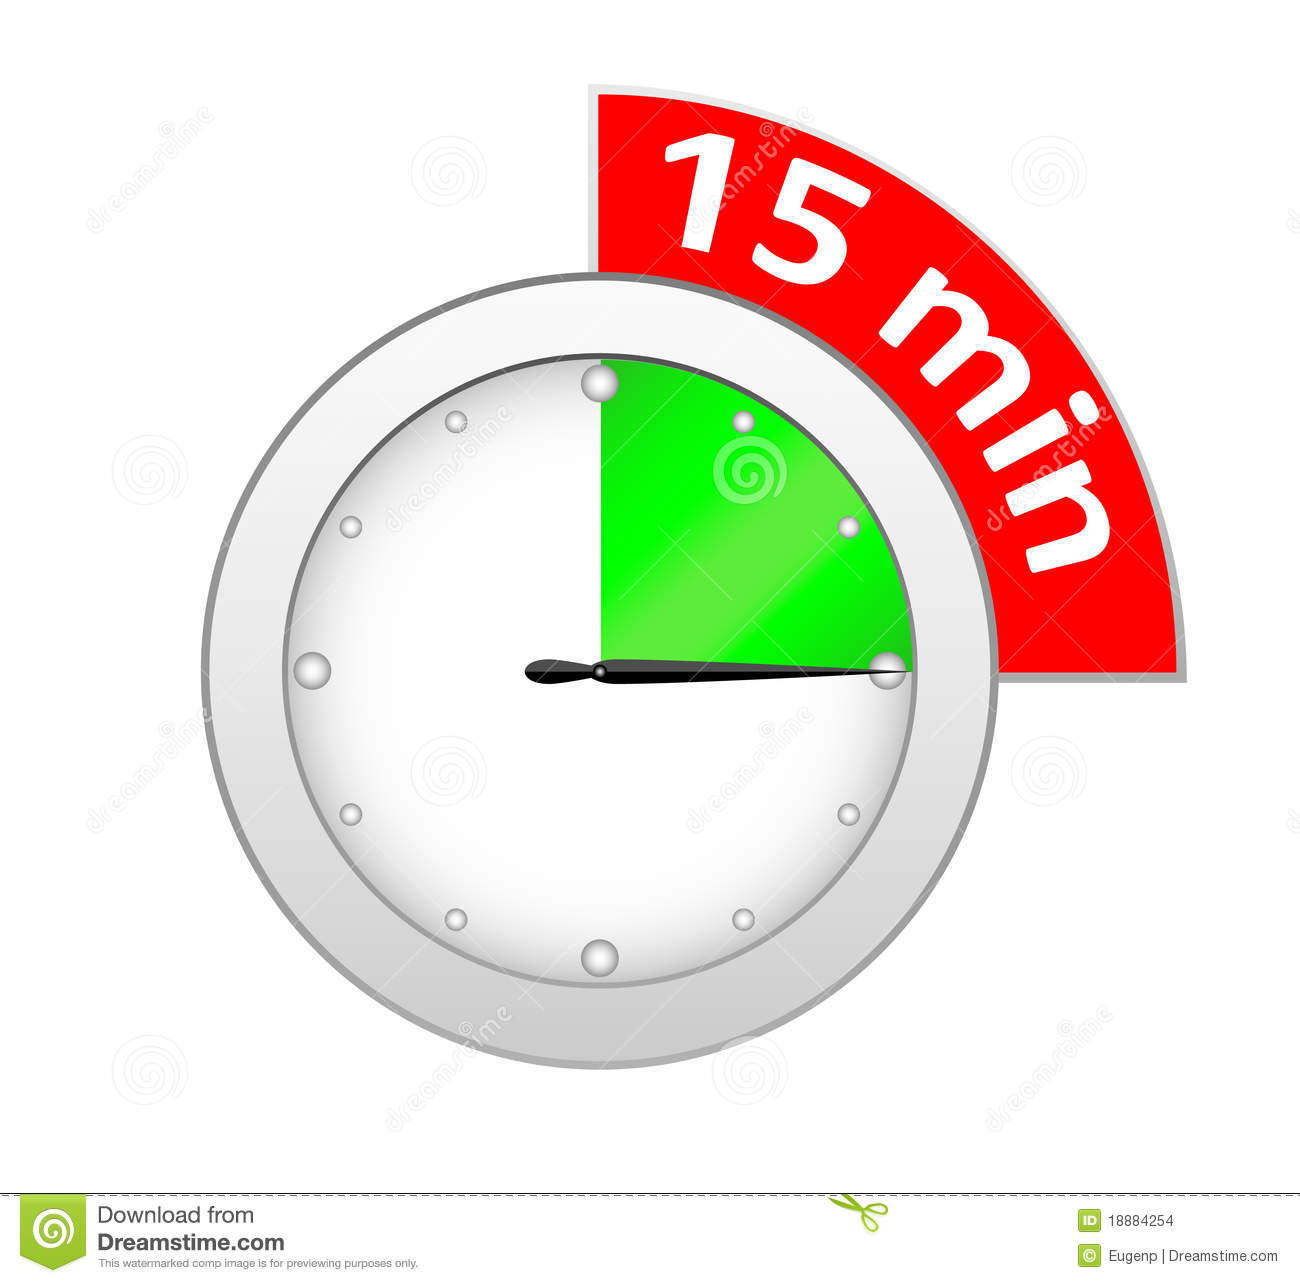 15 timer clipart